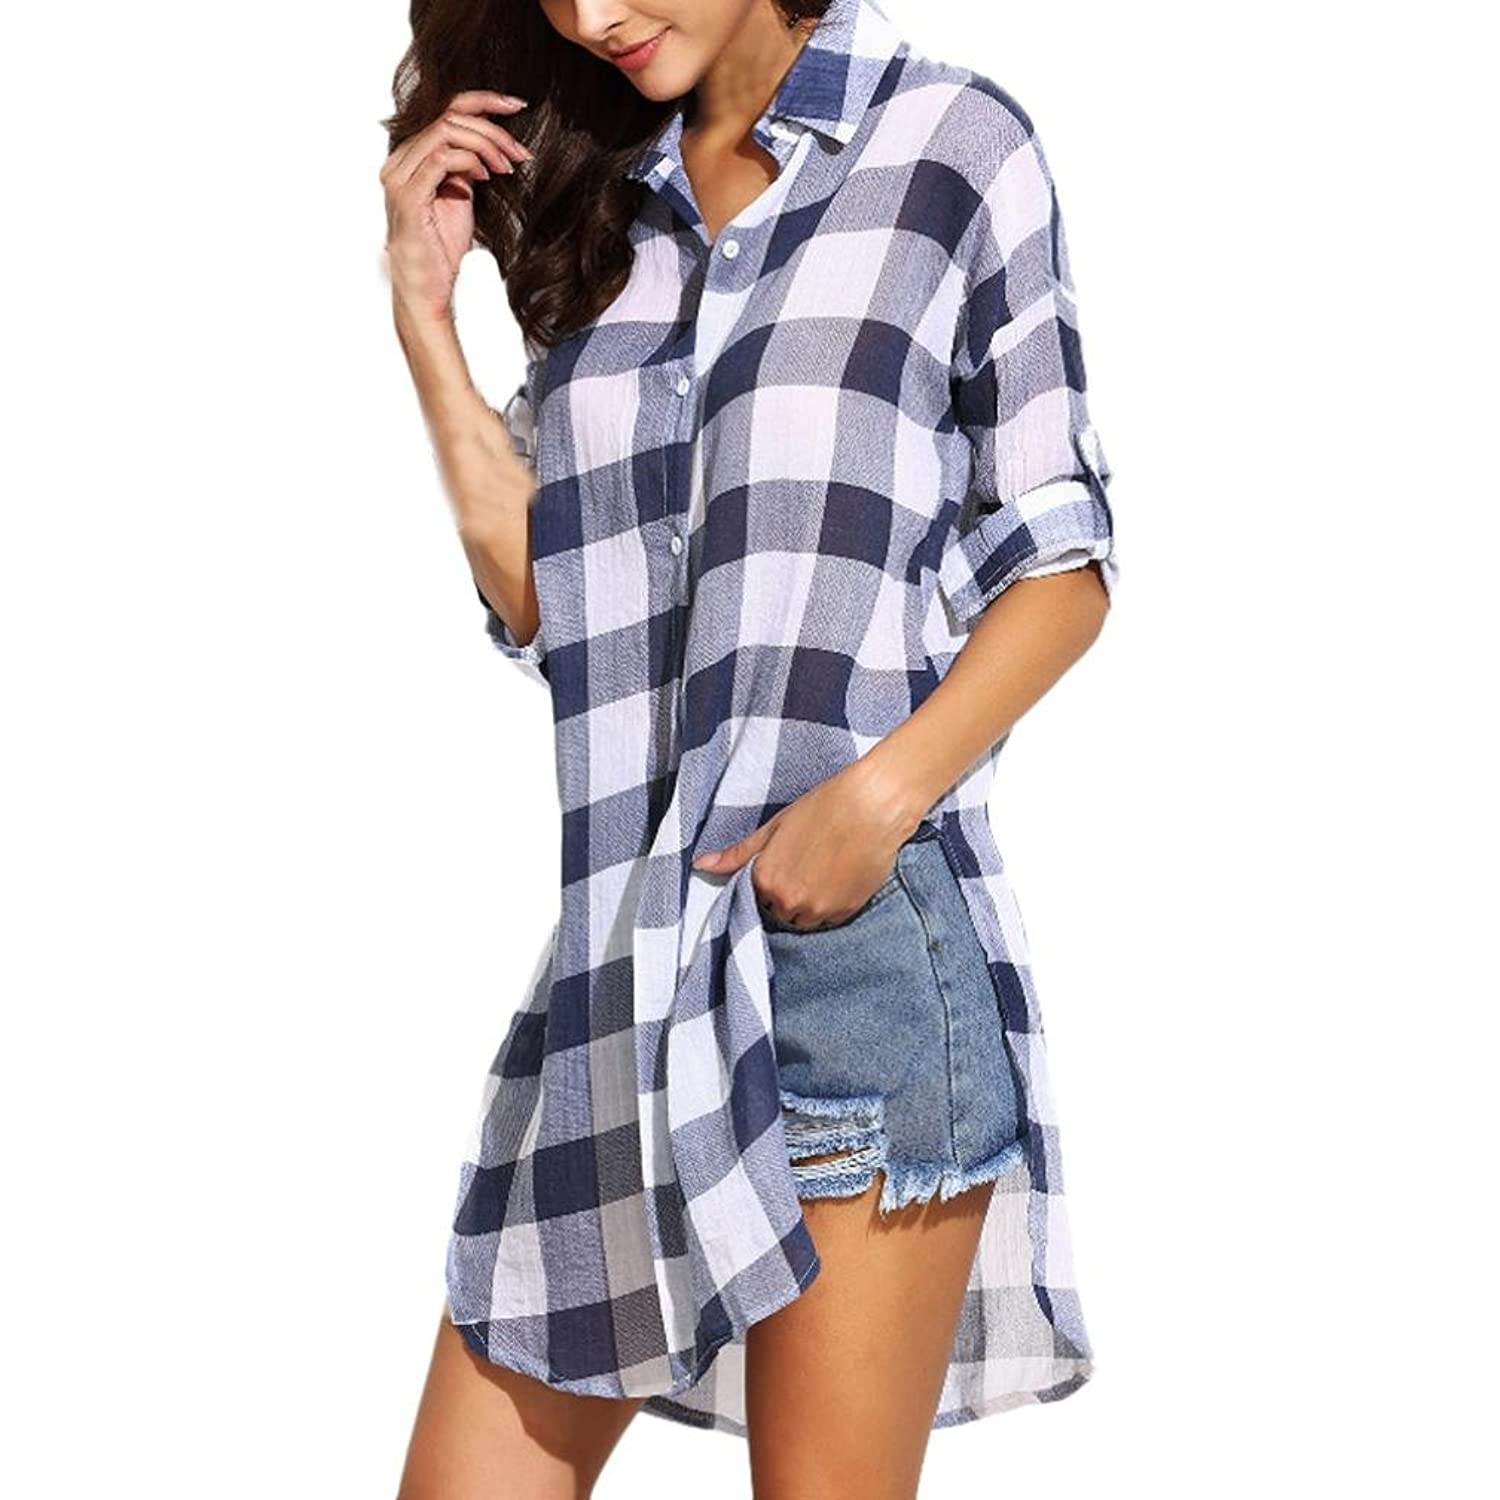 Franterd, Womens Casual Shirt Loose Long Sleeve Plaid Kimono Blouse Tops